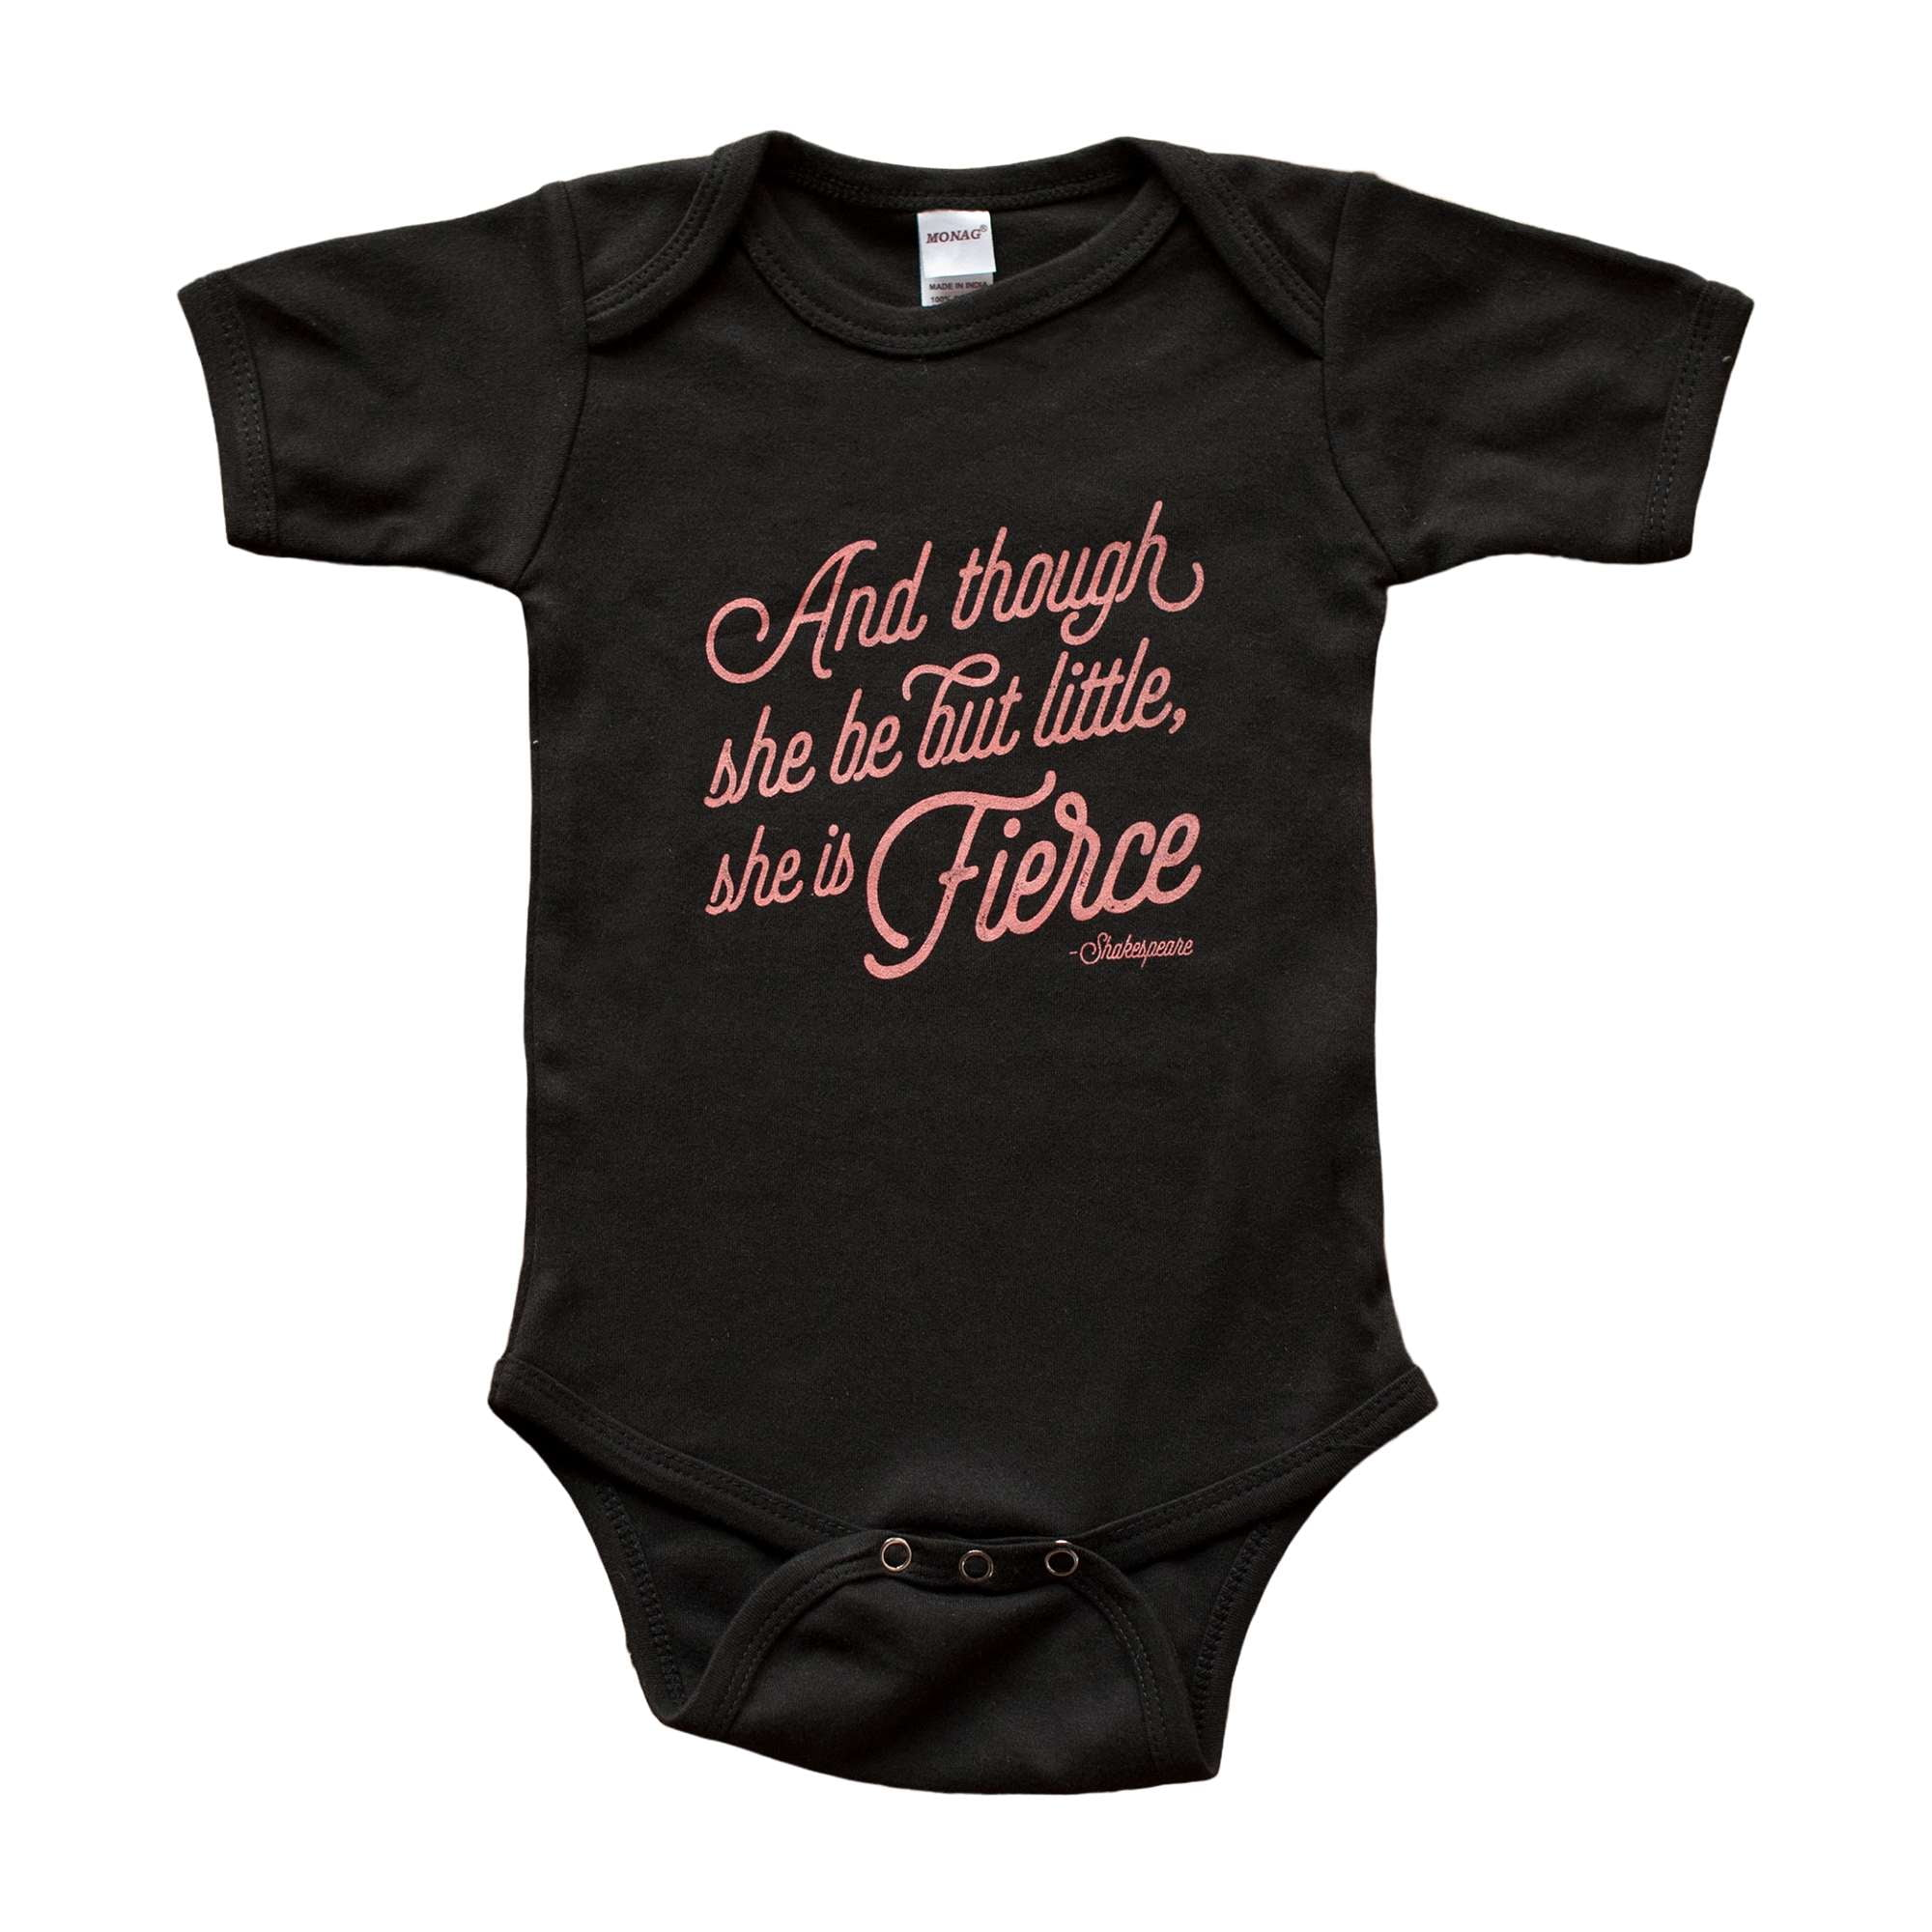 She is Fierce in Black Baby Bodysuit - Sweetpea and Co.